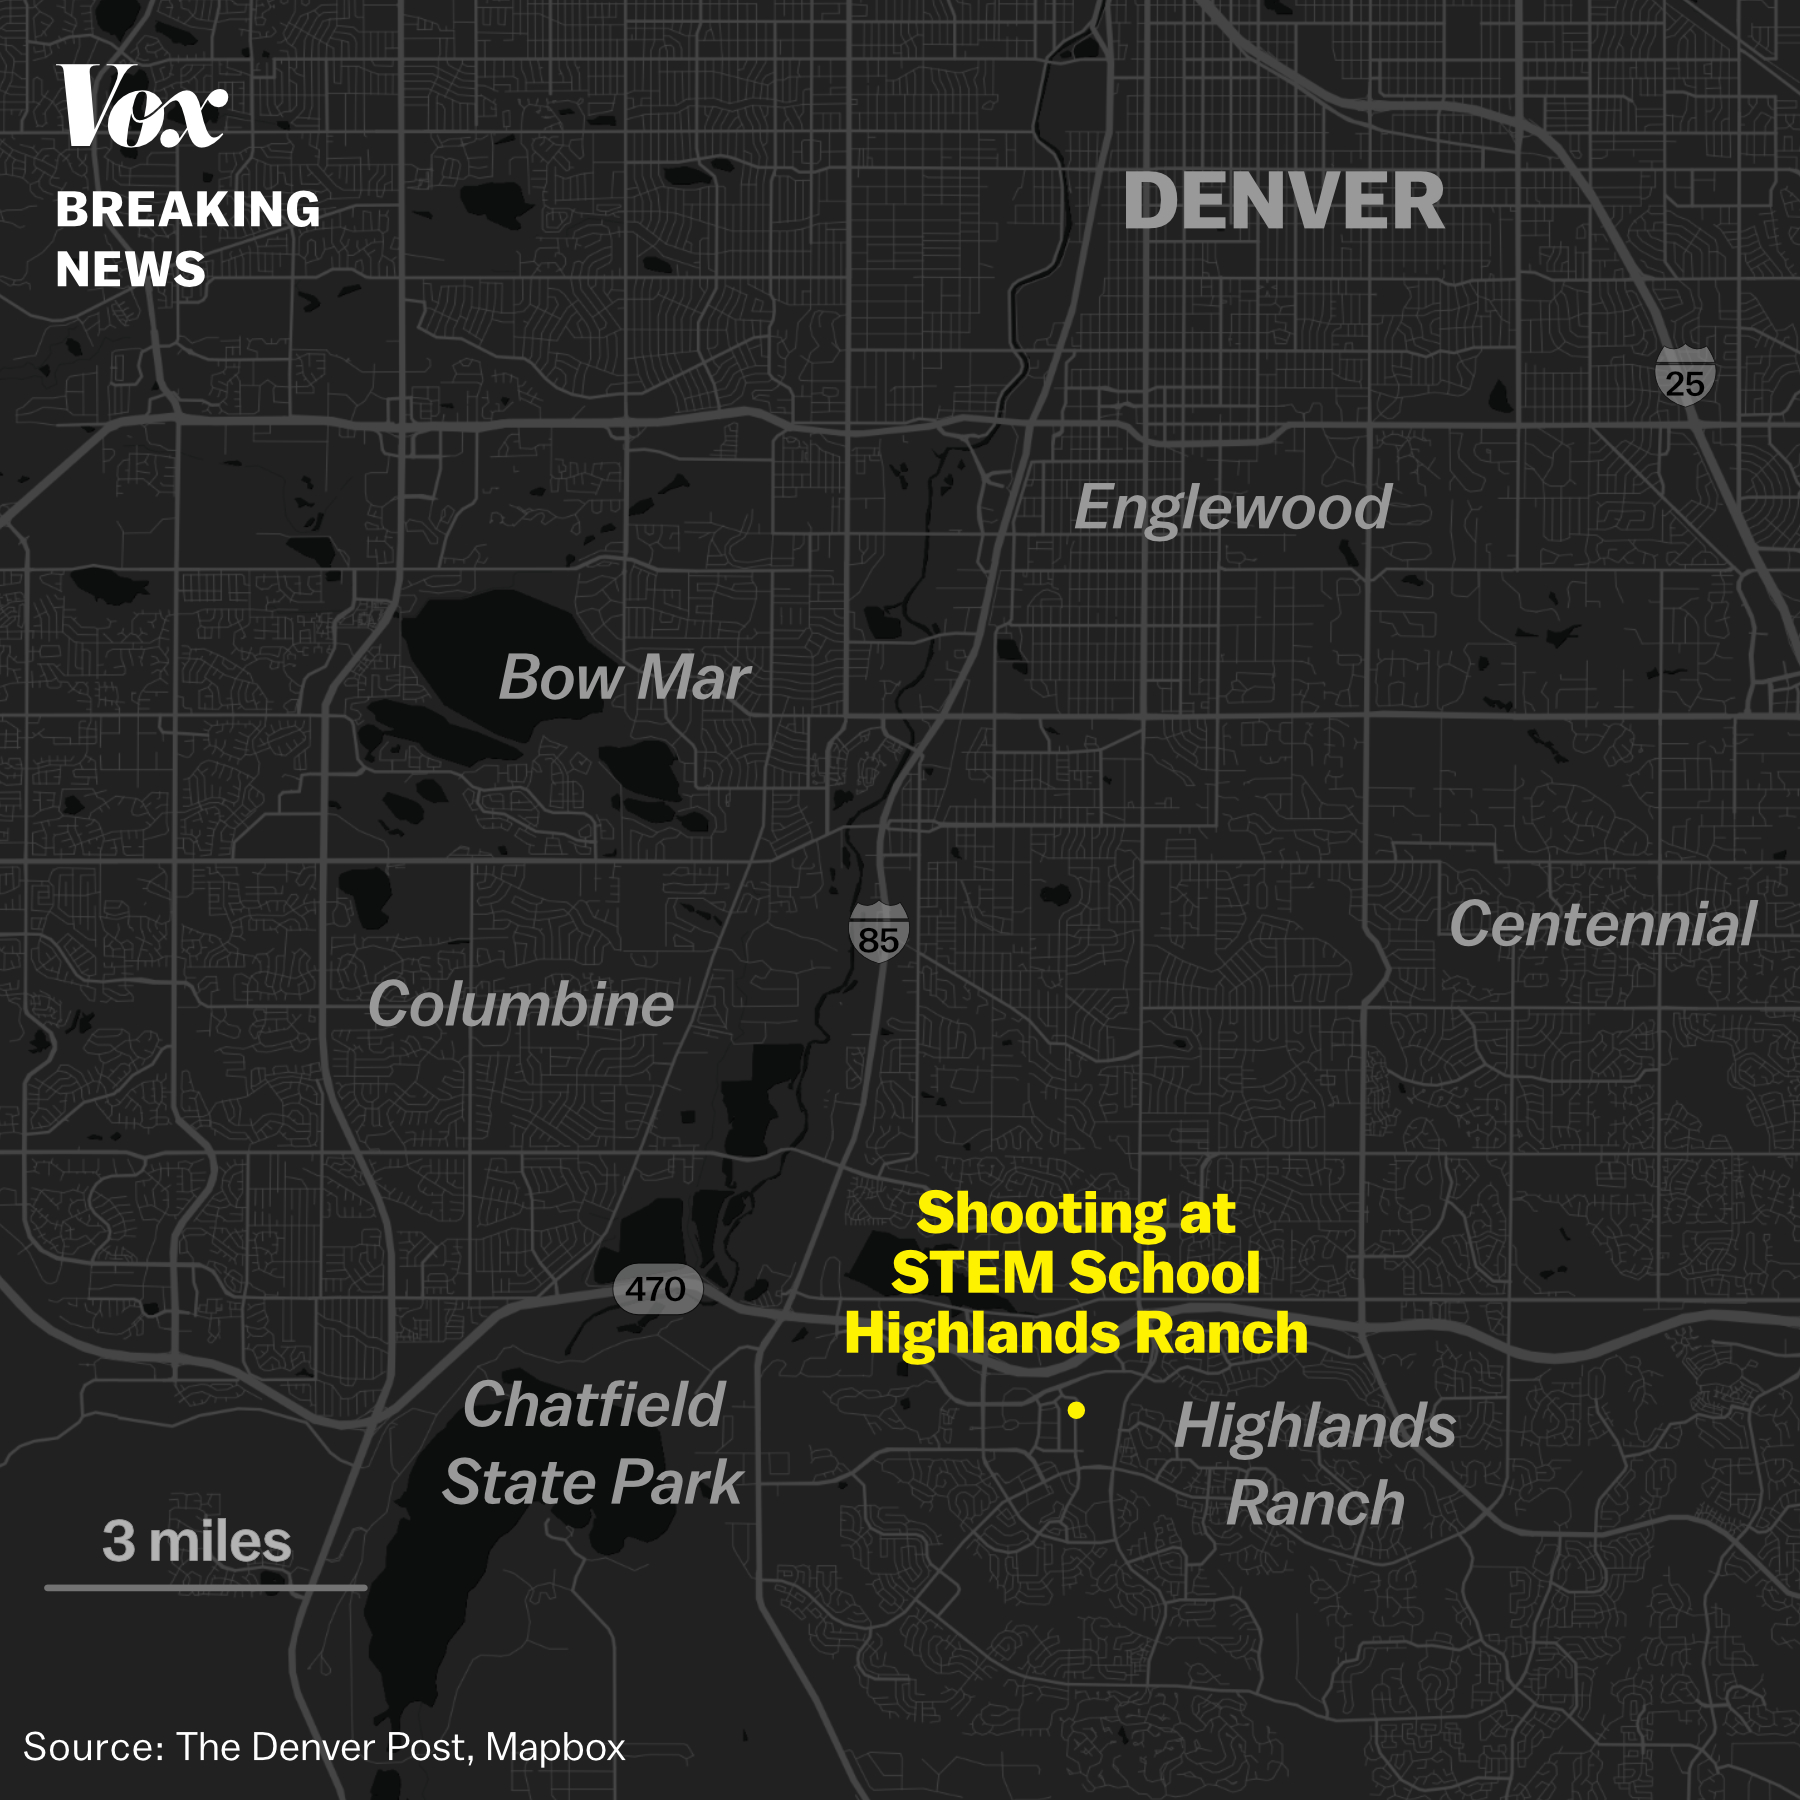 Flipboard: The Latest: 2 In Custody In Colorado School